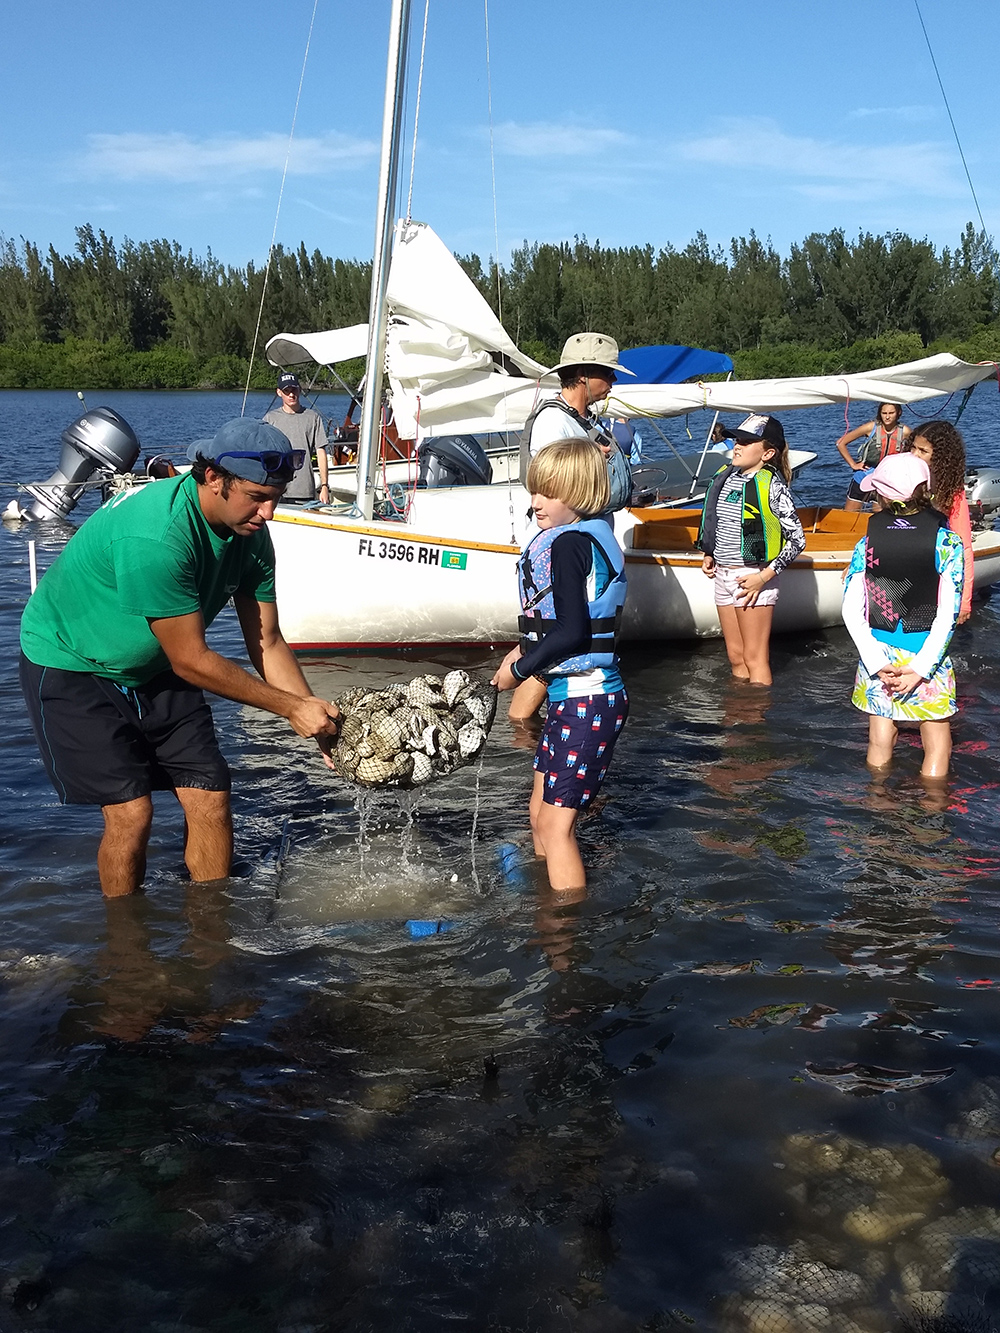 Youth Sailing Foundation, Vero Beach, Florida, ecosystem restoration, oysters, Ocean Research and Conservation Association, Indian River Lagoon